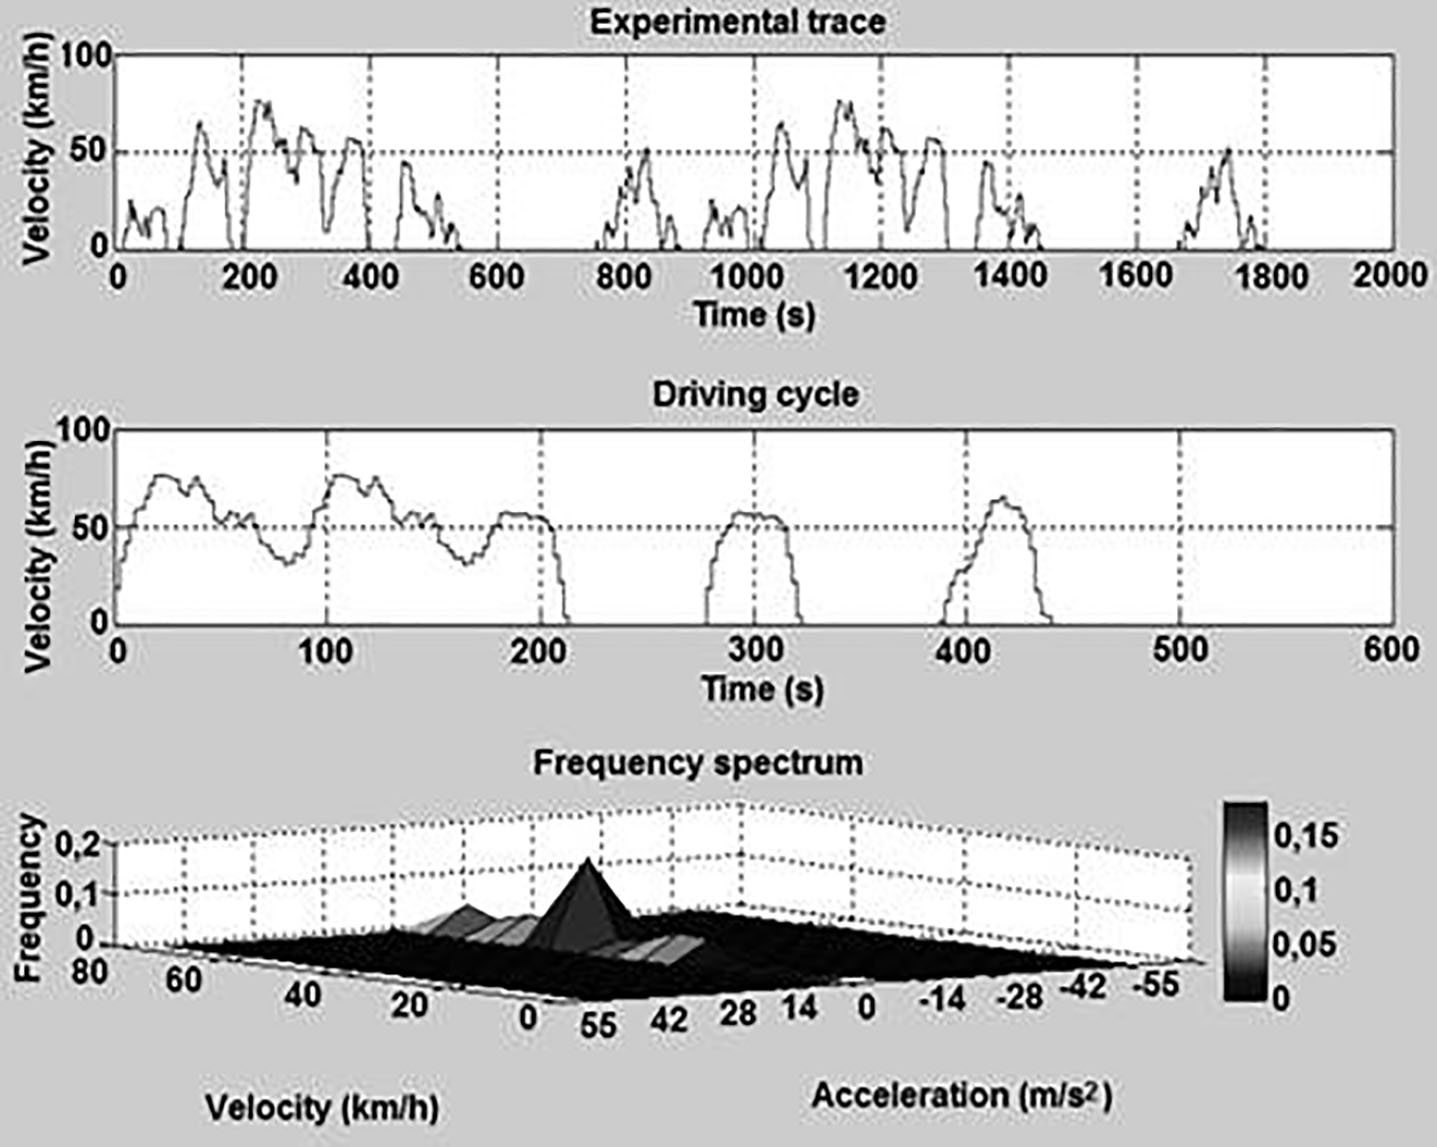 Engine Data Collection And Development Of A Pilot Driving Cycle For Select O Speed Ford 3000 Wiring Diagram Figure 6 Representation The Velocity Acceleration Frequency Spectrum Derived Constructed Obtained After Processing Pereira Real